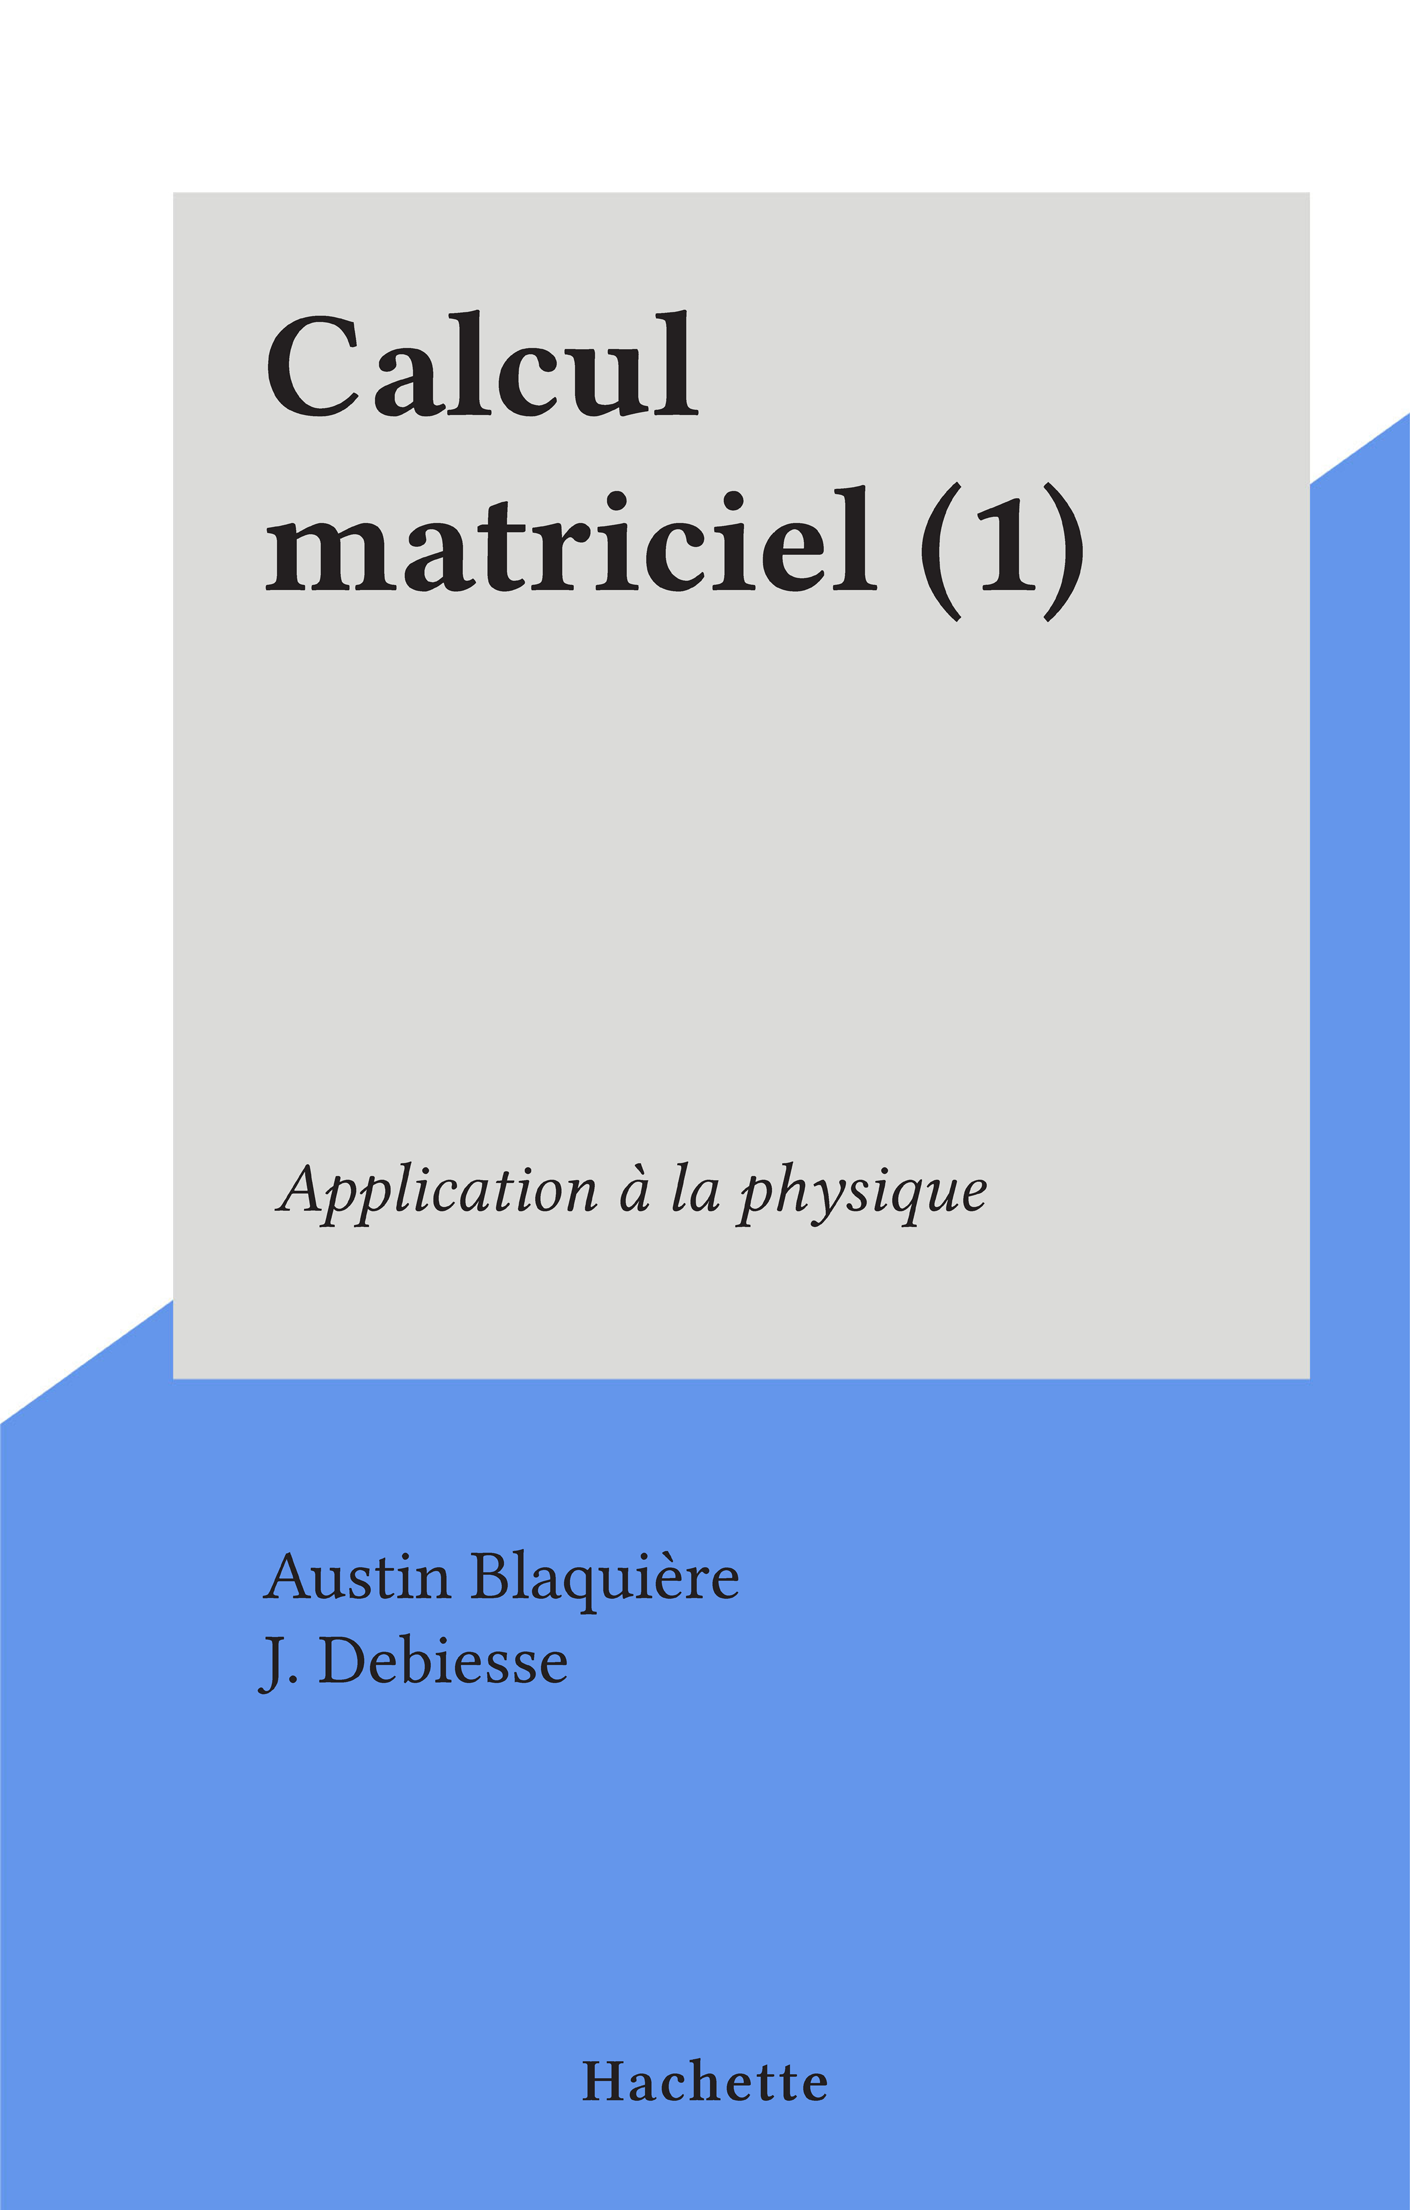 Calcul matriciel (1)